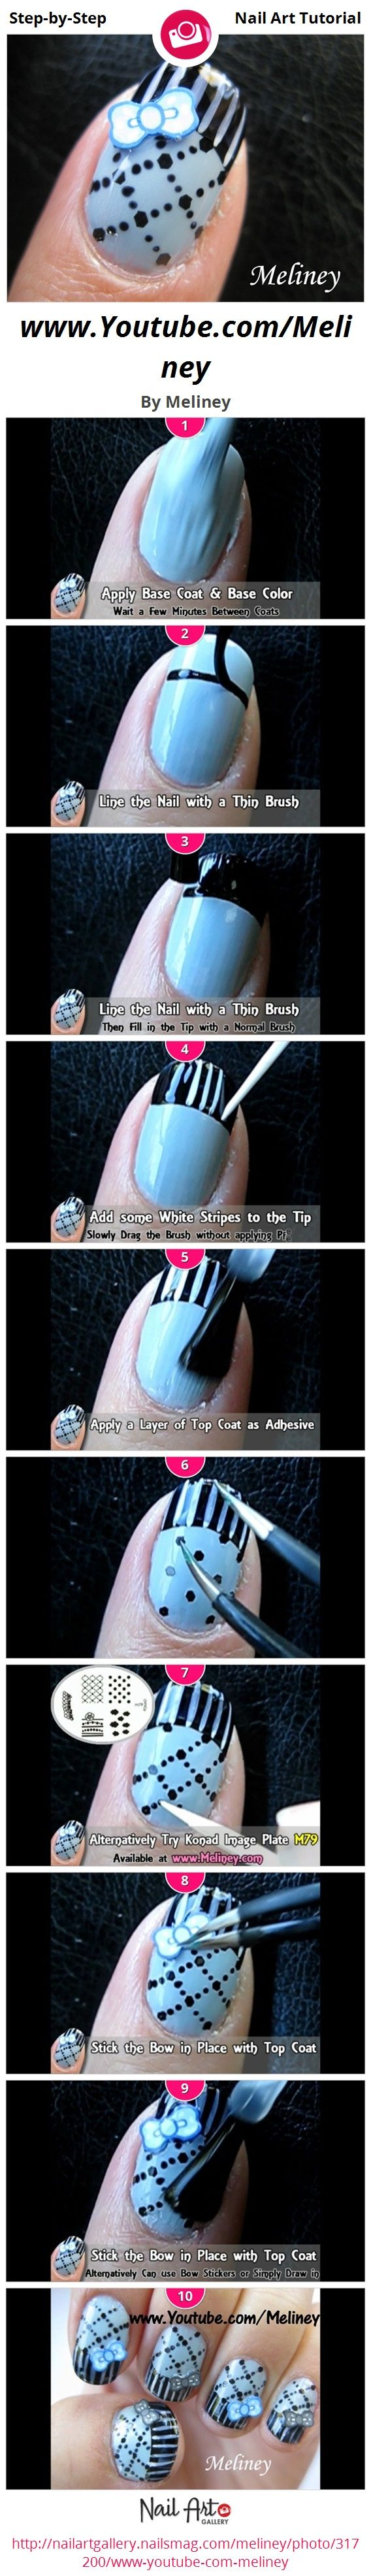 Nails by Meliney Step-by-Step Tutorial